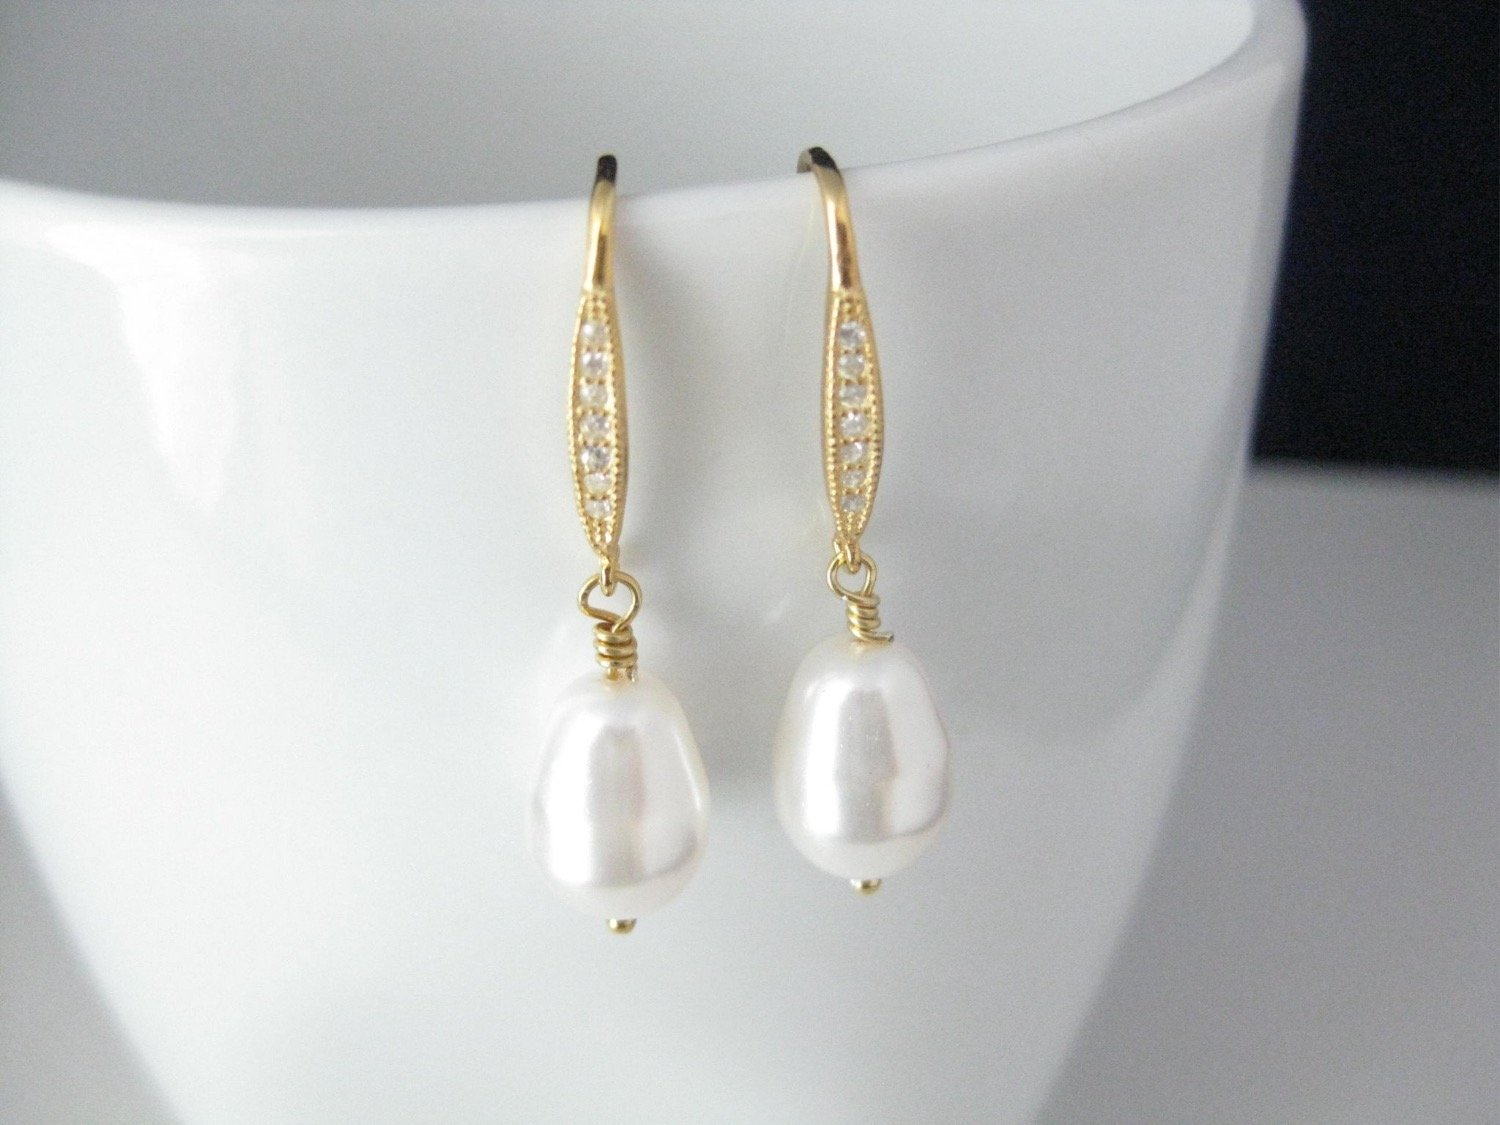 White Pearl Drop Earrings Wedding Jewelry with 14K gold filled on .925 Sterling Silver Cubic Zirconia Ear wires - Clairesbridal - 5